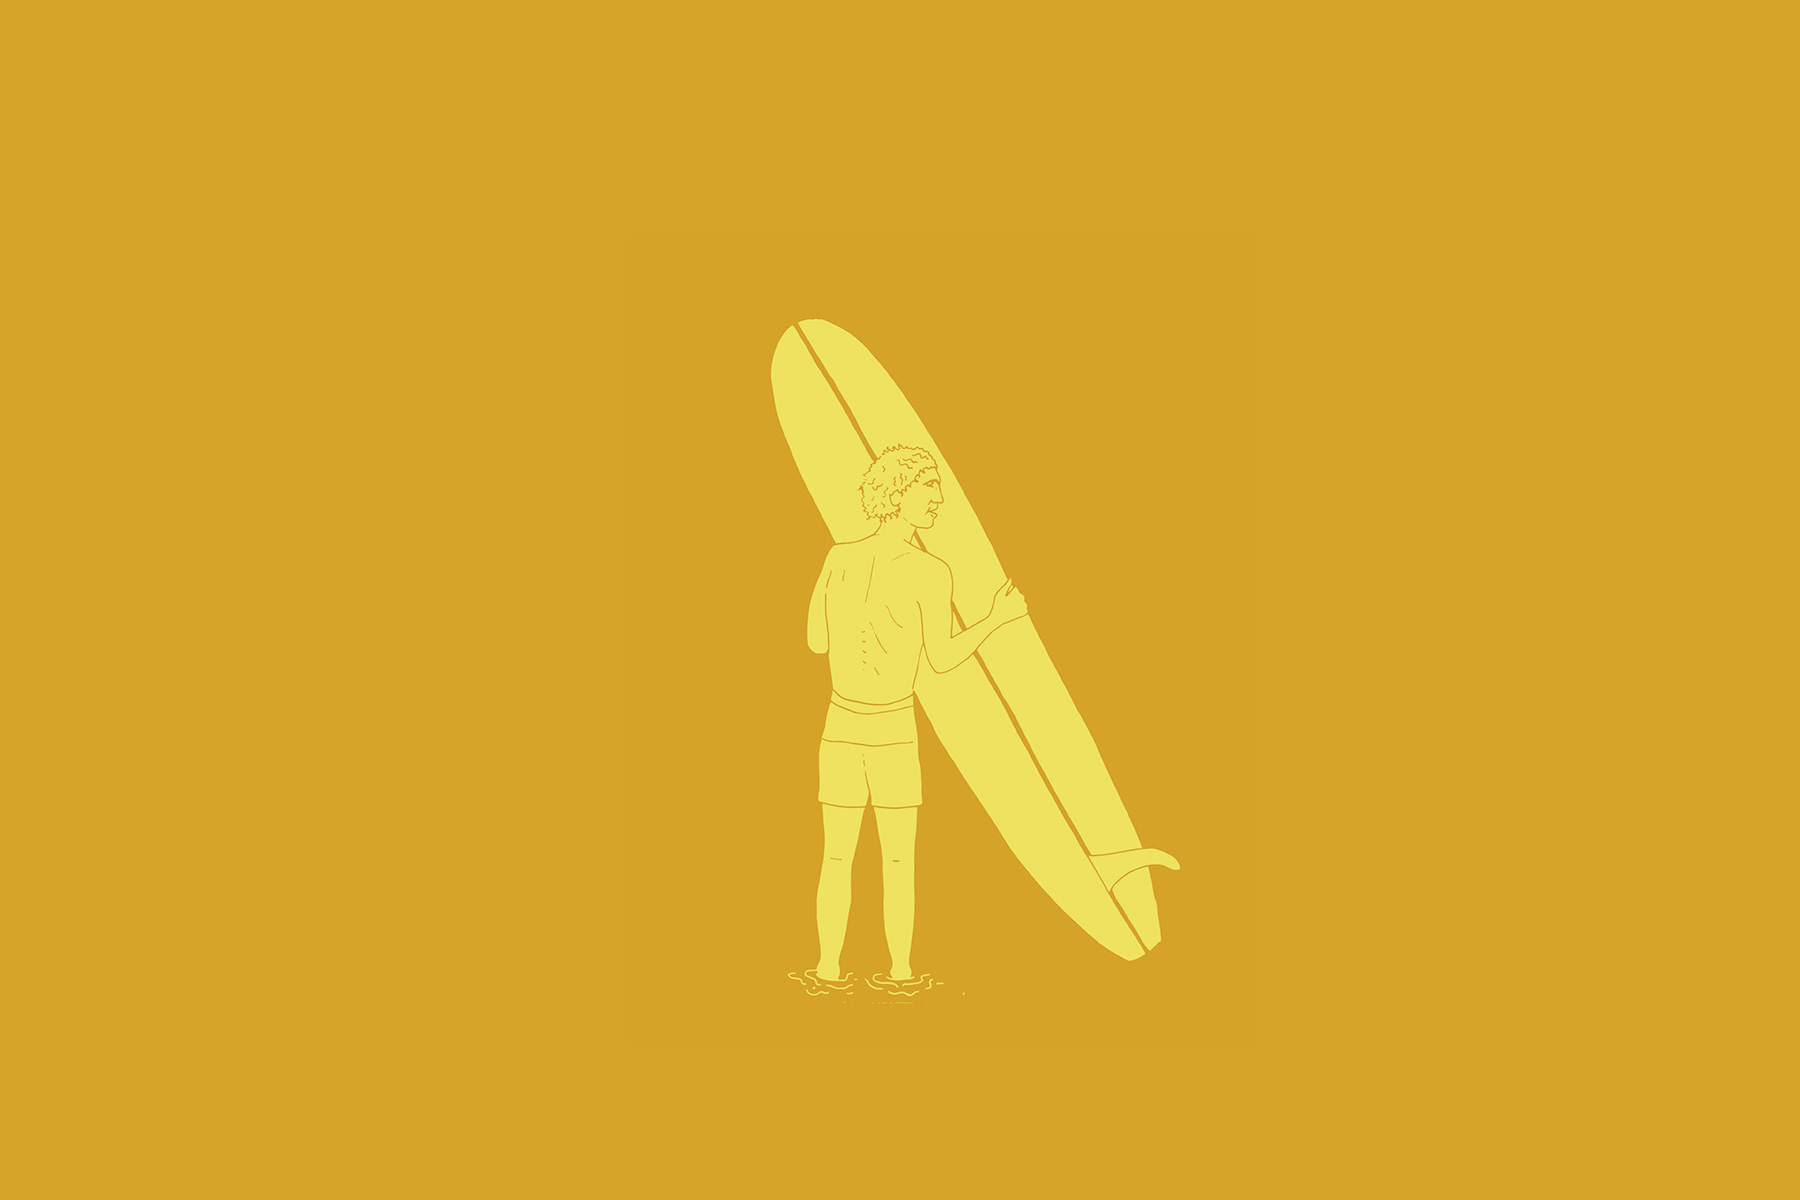 illustration of a surfer holding a nat young magic sam surfboard from 1966 by clara jonas